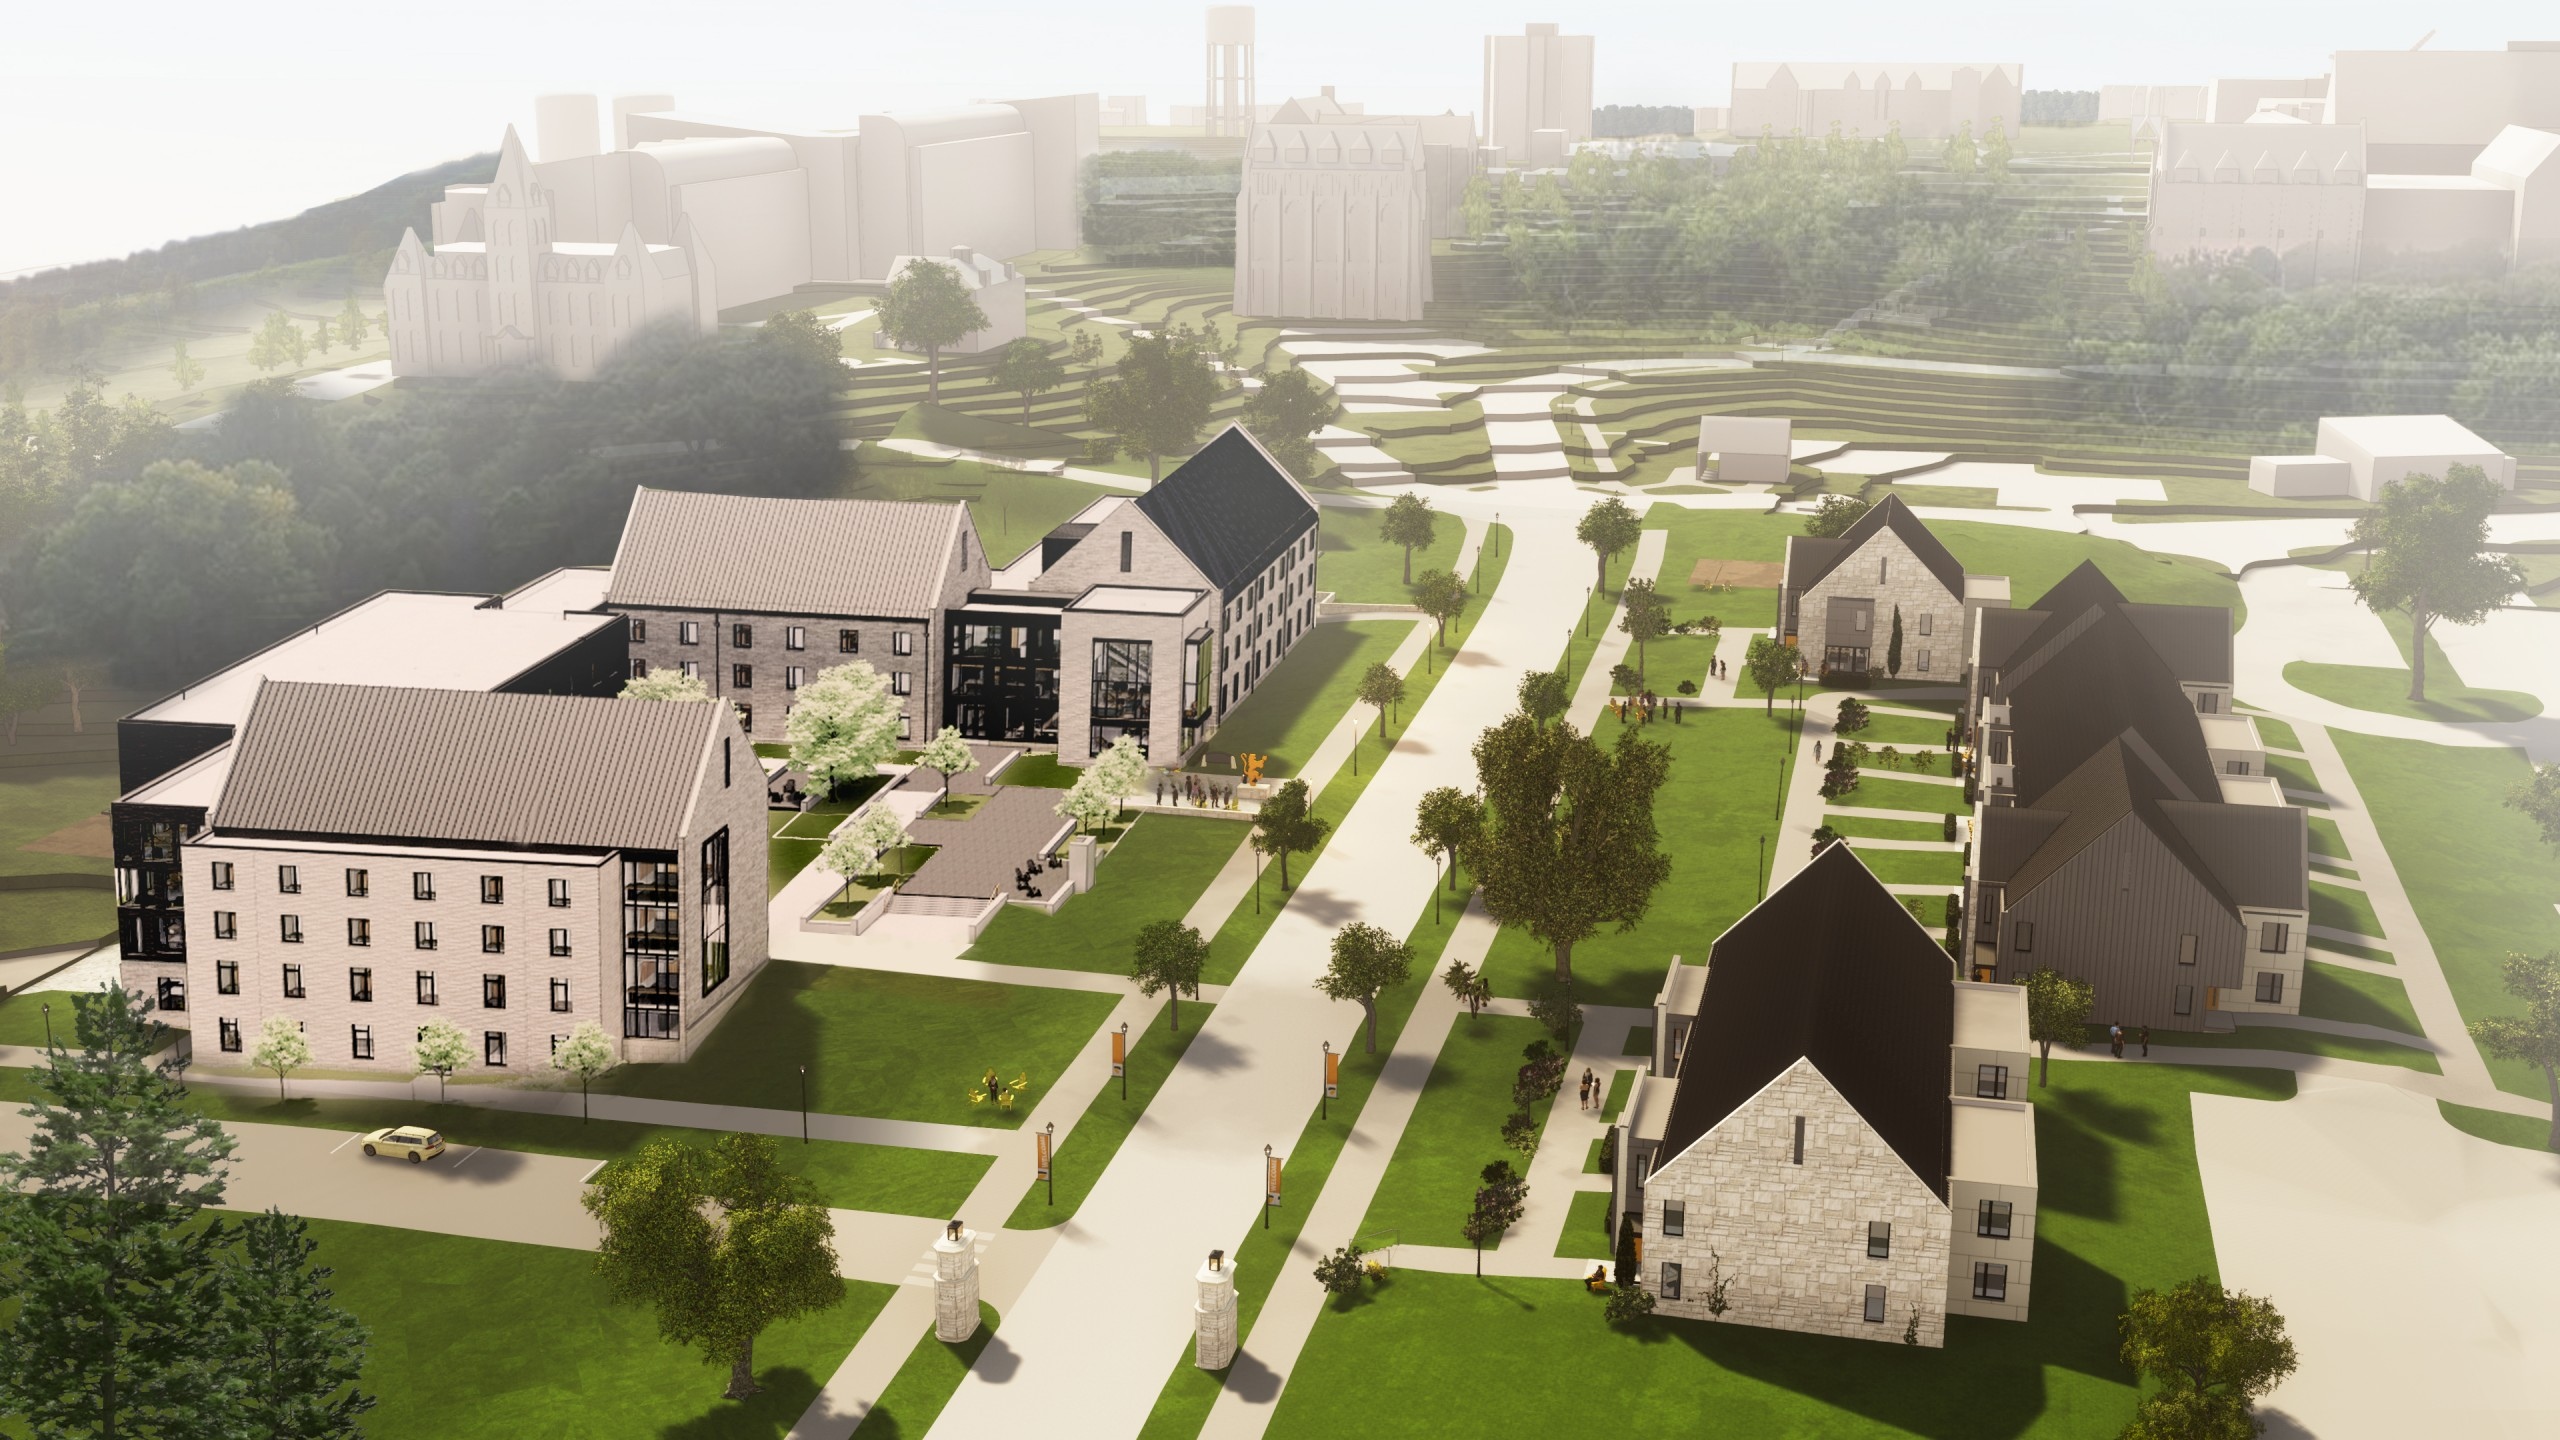 This aerial view of the Ole Avenue Project shows the new 300-bed residence hall the college will build on the south side of St. Olaf Avenue, as well as the town house–style residences with 140 student beds that will replace the honor houses on the north side of St. Olaf Avenue.